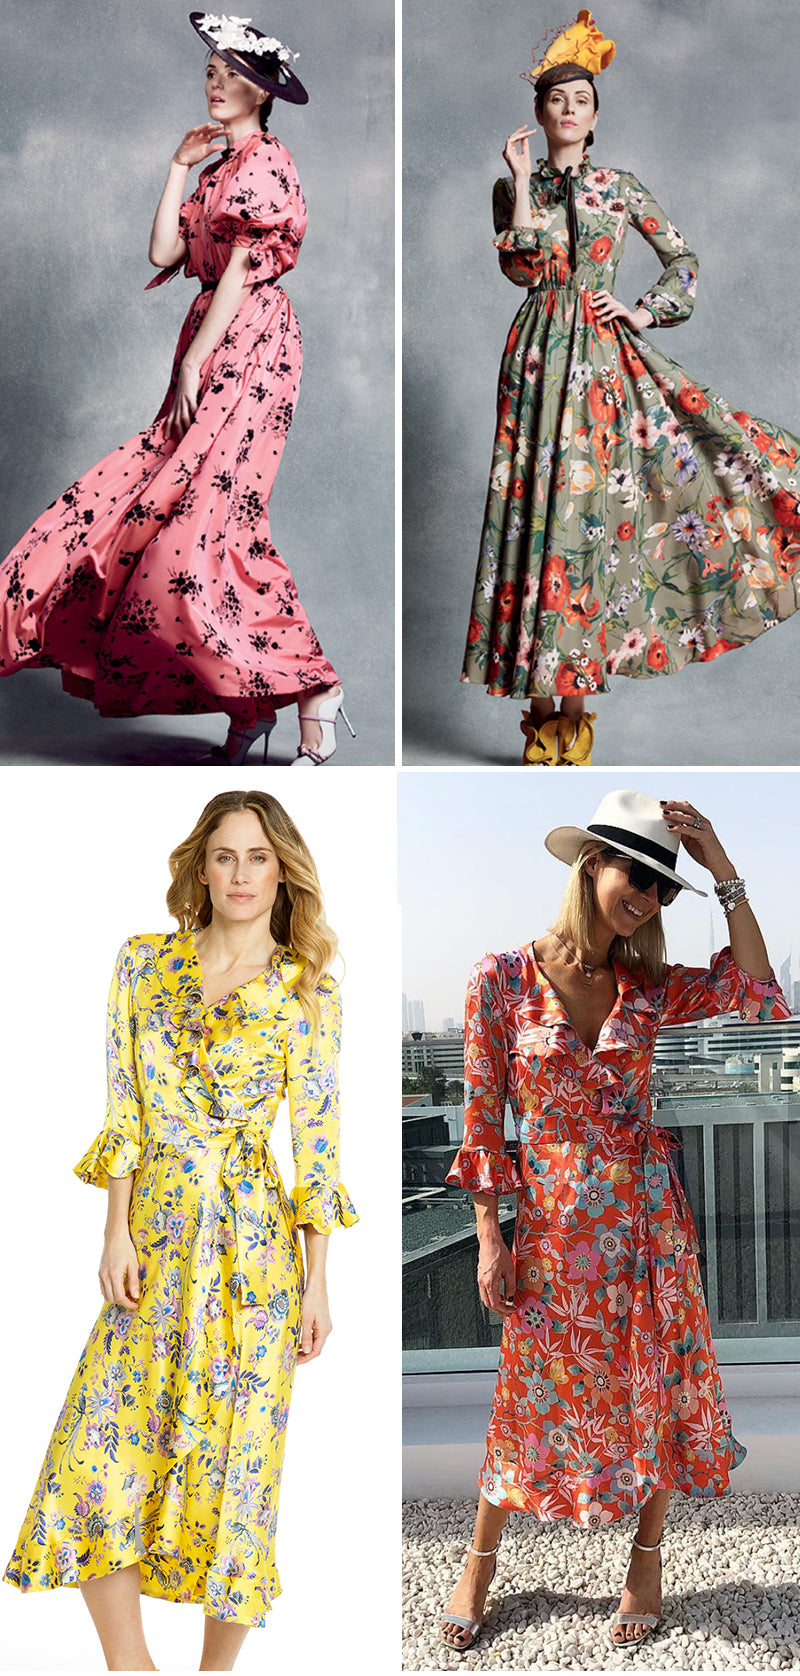 ridleylondon-printed-floral-silk-midi-dresses-royal-ascot-blog-image-@bricksandstitches